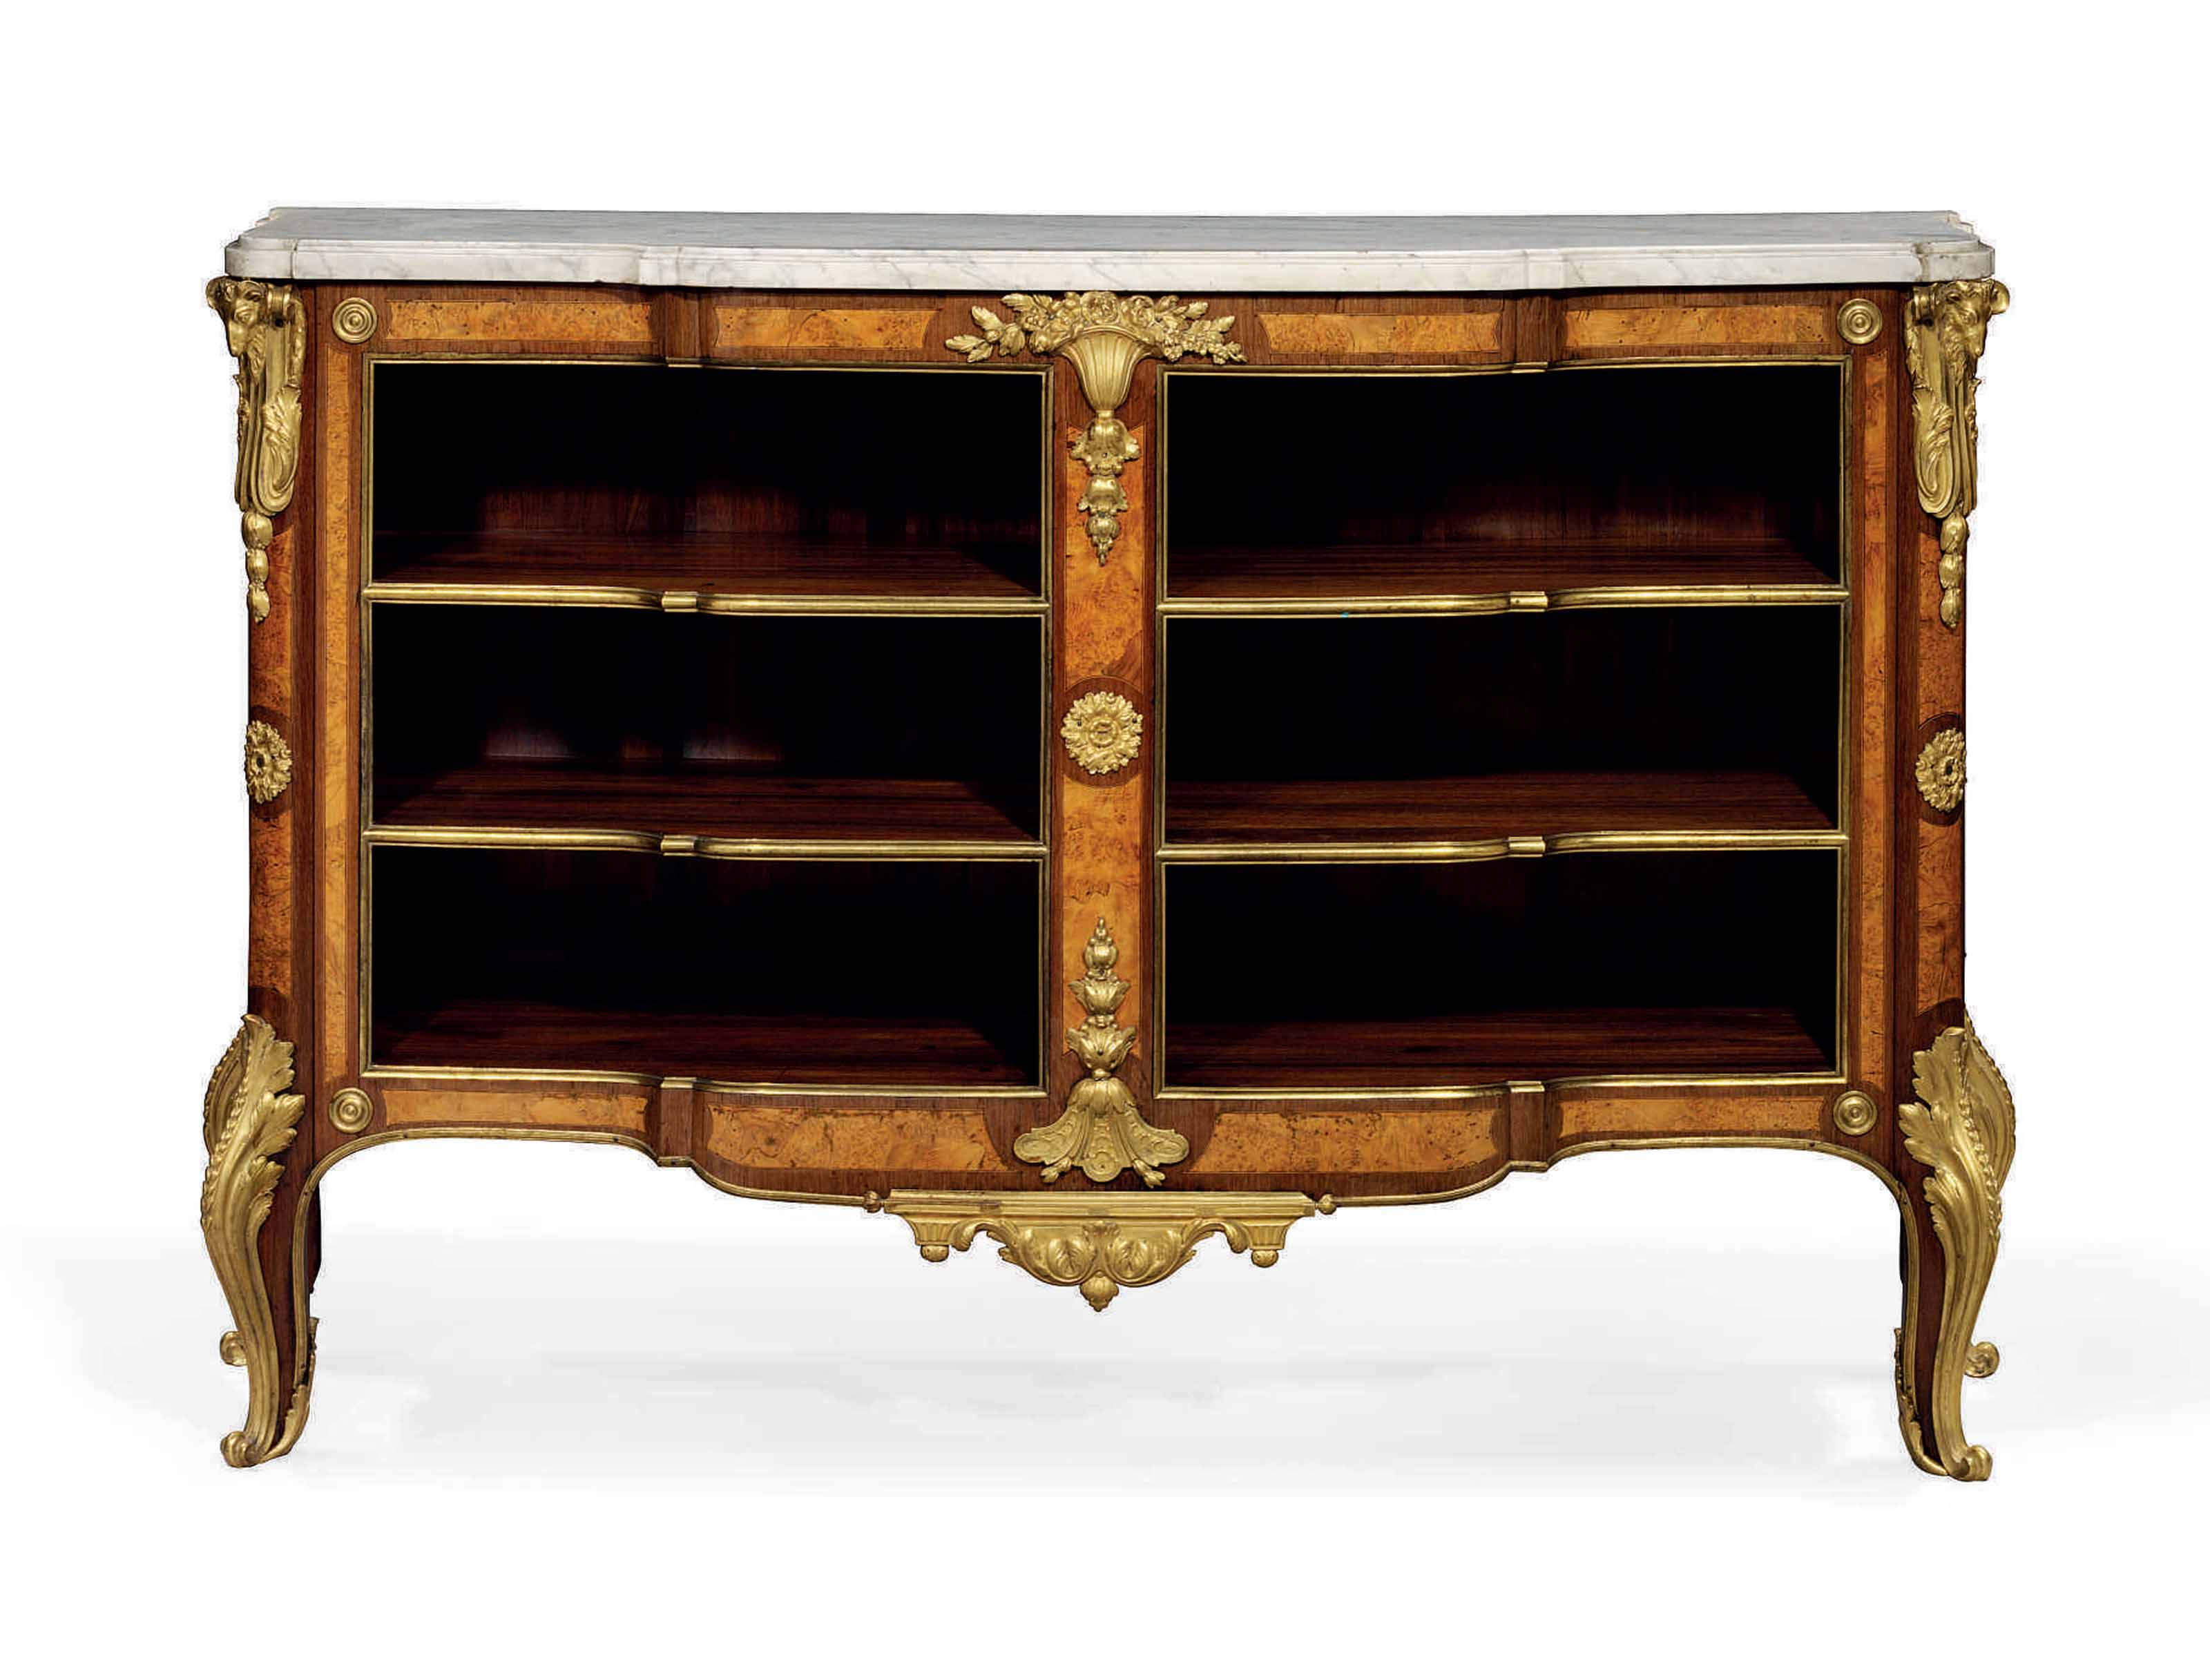 A LATE LOUIS XV ORMOLU-MOUNTED AMARANTH, BURR-WALNUT, MAPLE AND BOIS SATINE COMMODE EN BIBLIOTHEQUE